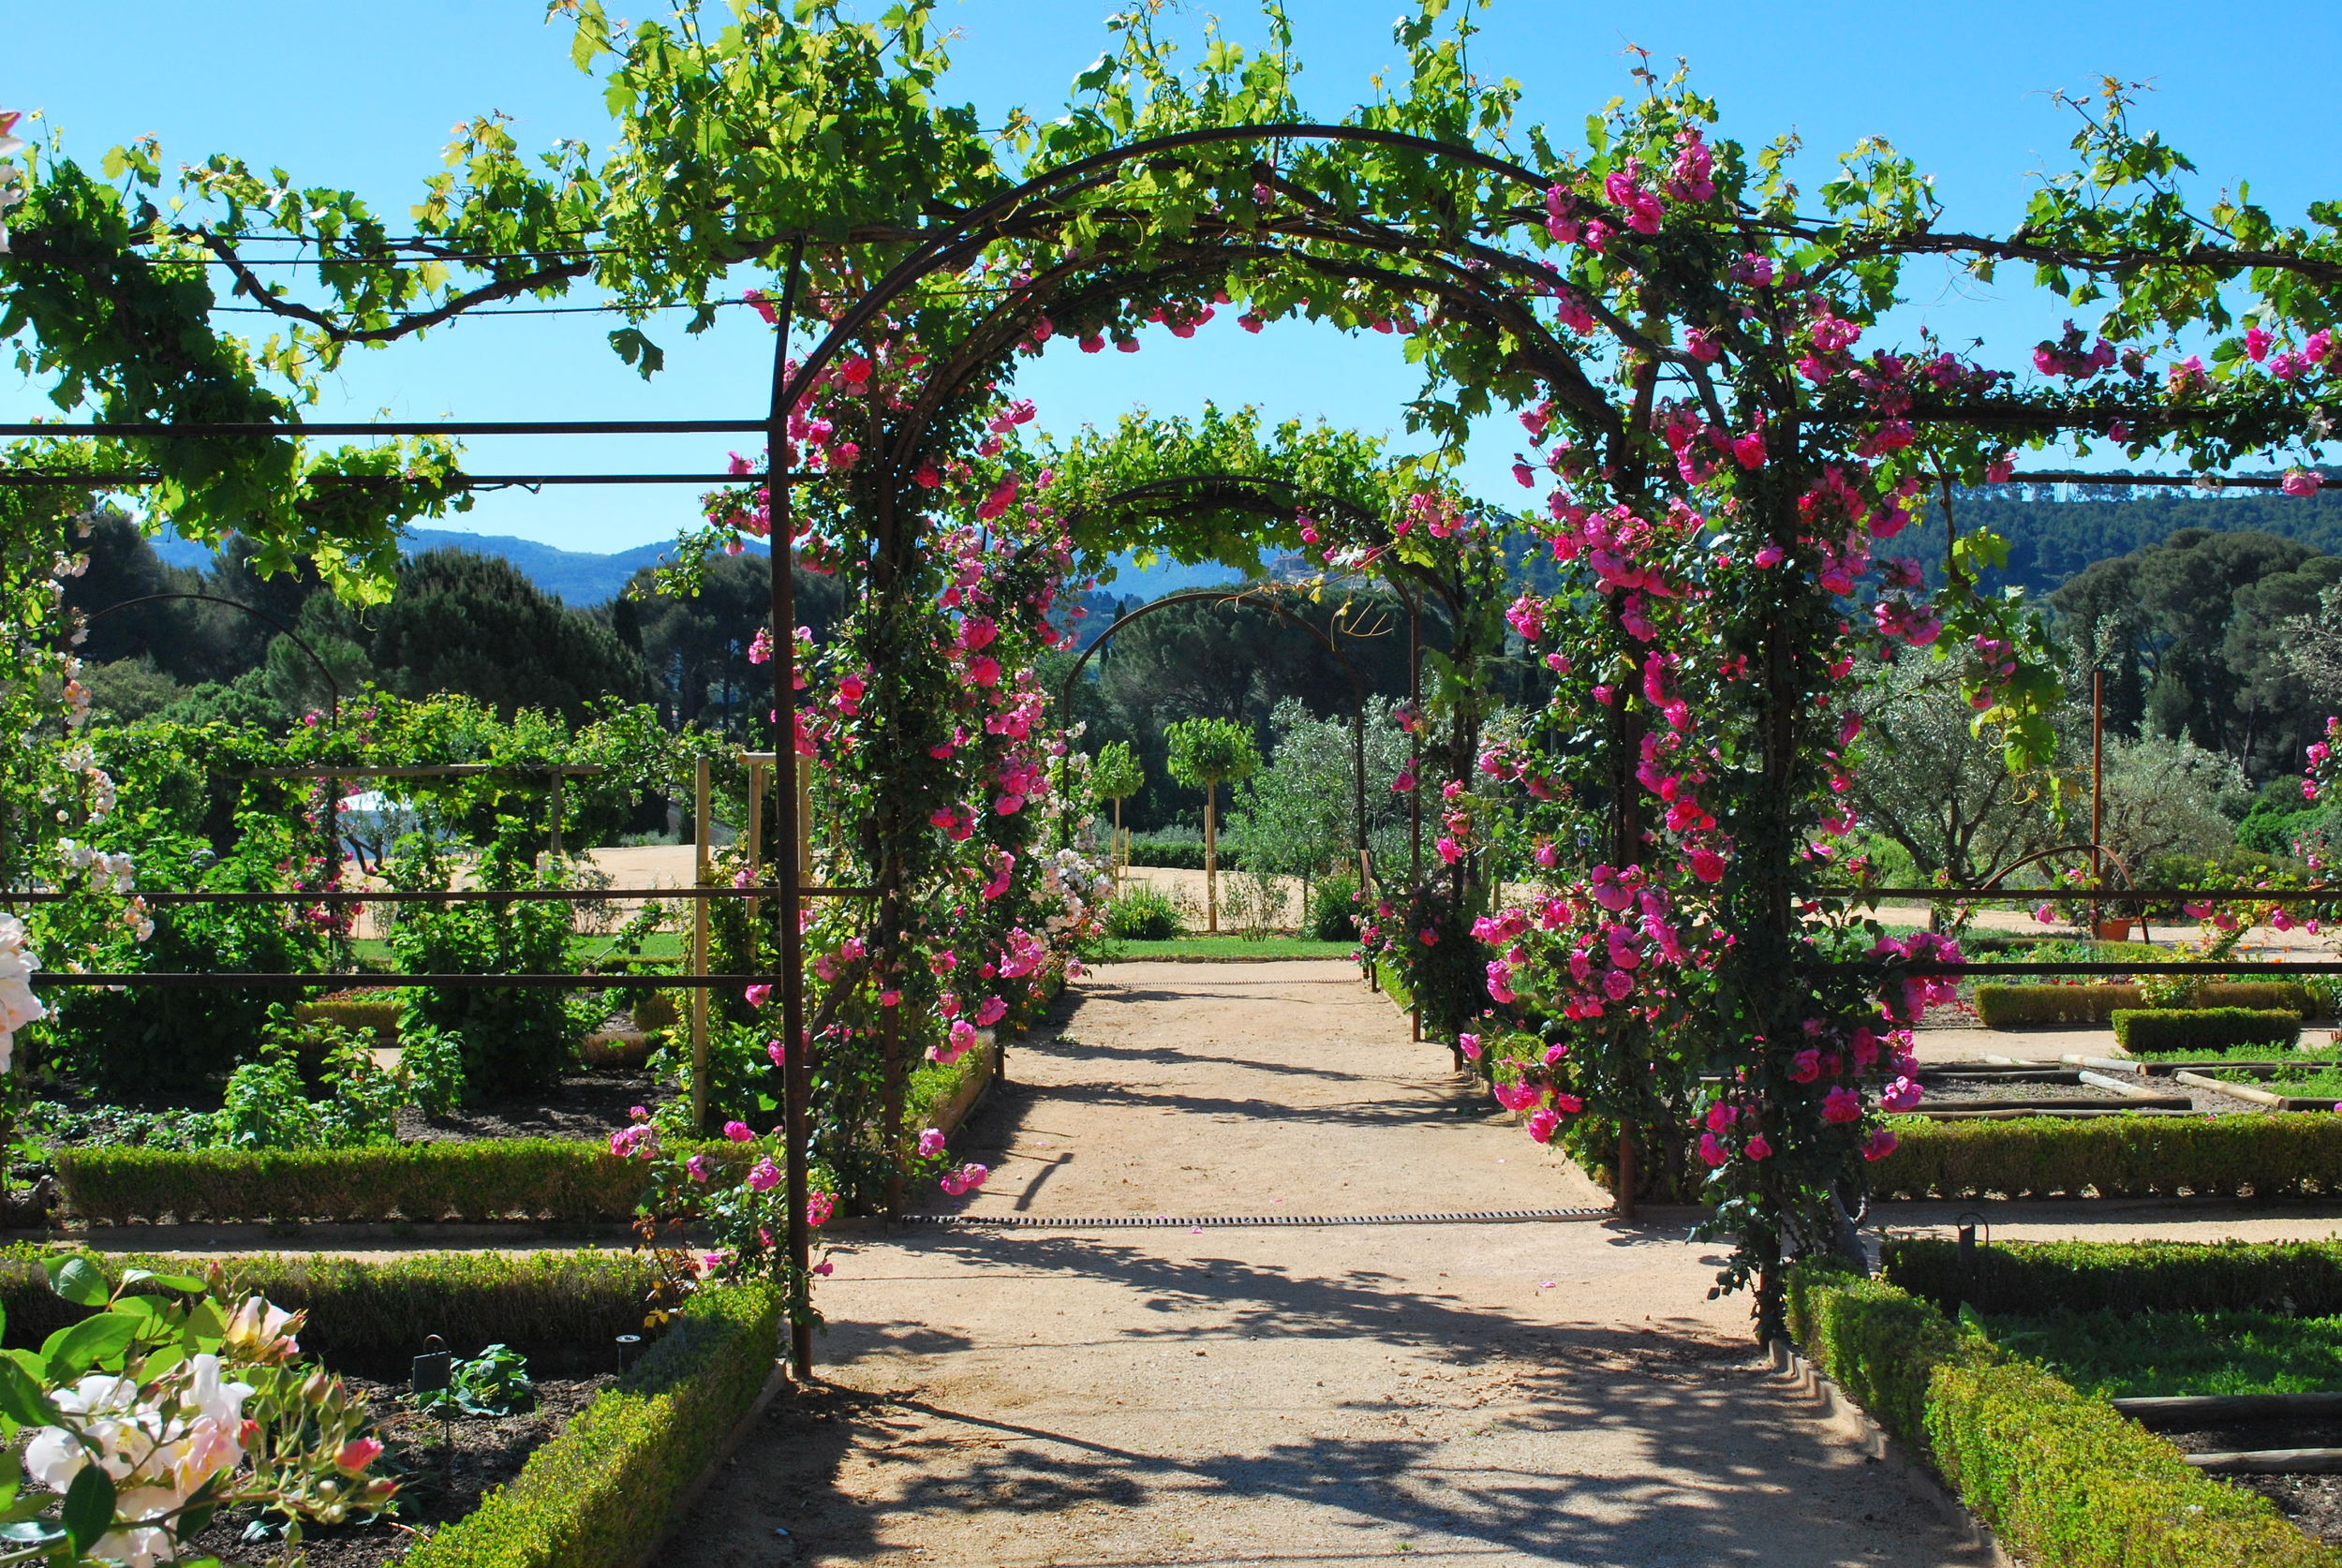 Arches of Roses in His Potager